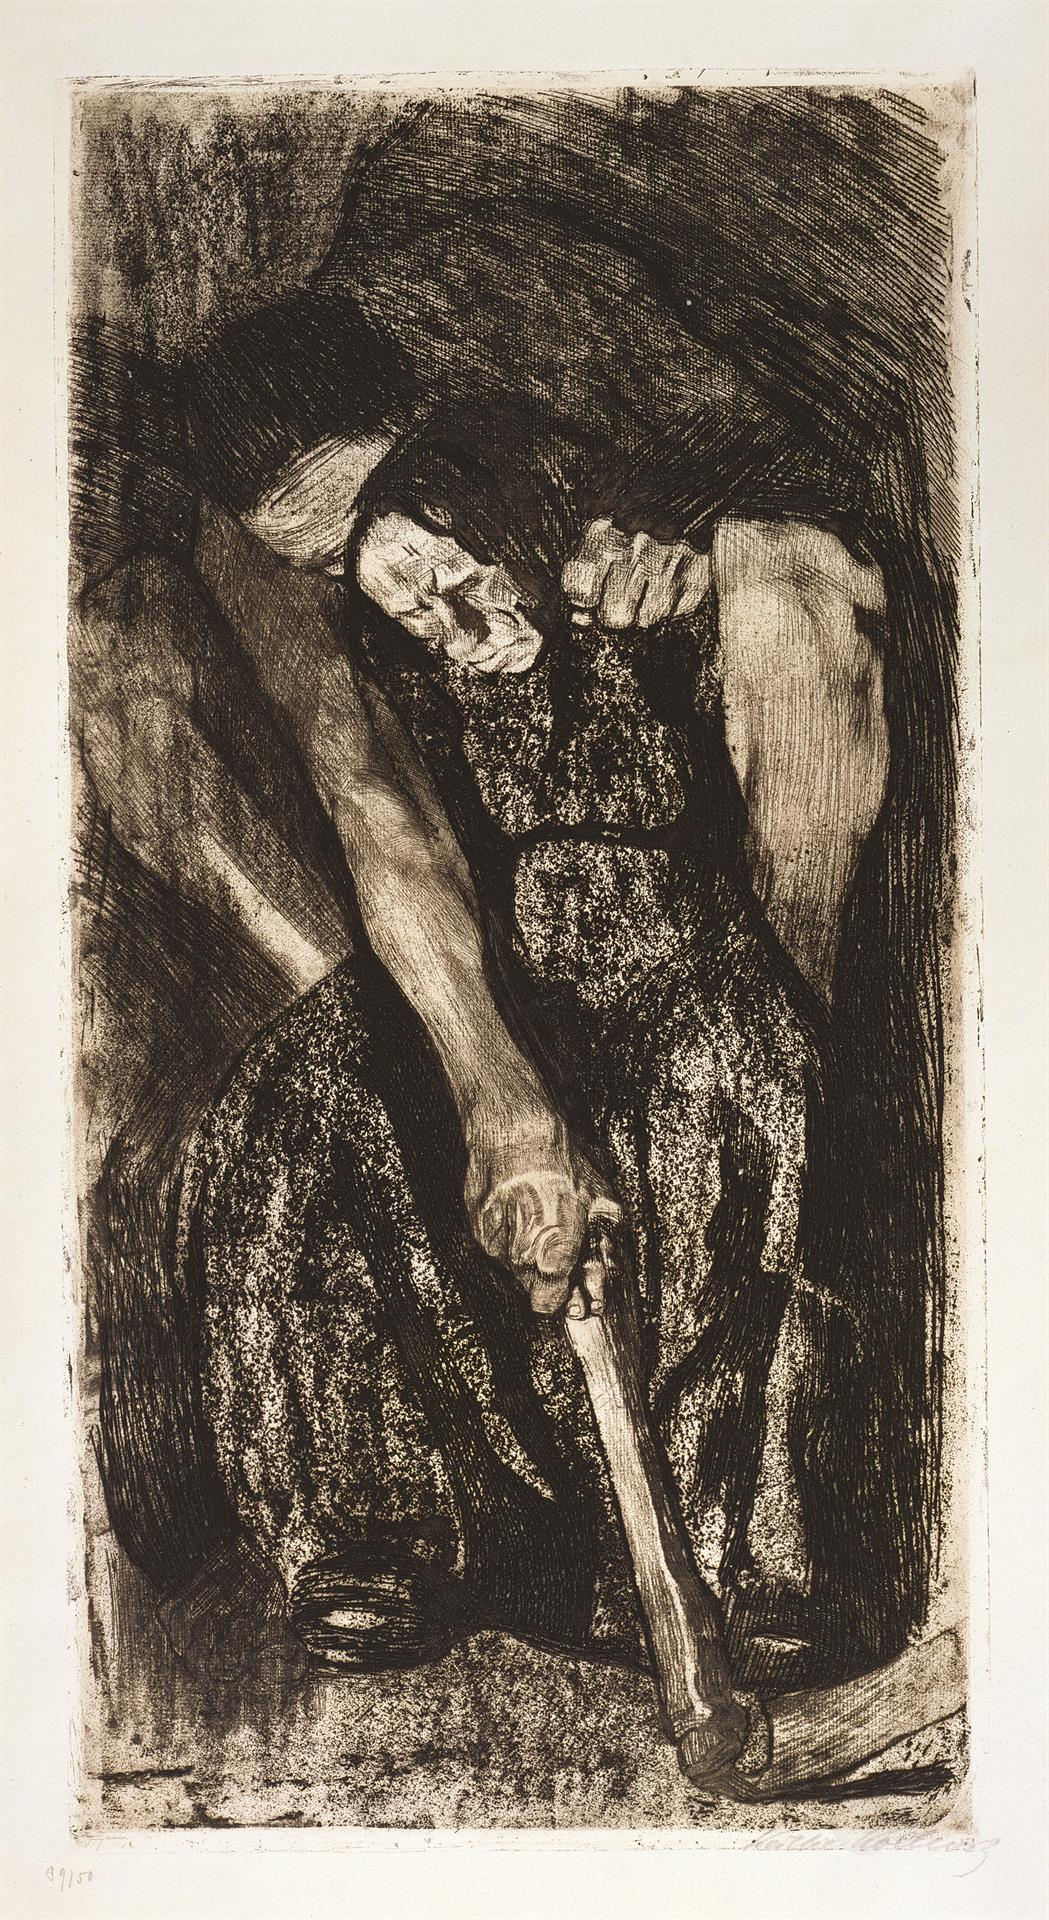 Käthe Kollwitz, Inspiration, 1904, line etching, drypoint, reservage, sandpaper and soft ground with imprint of laid paper, Kn 86 VII d, Cologne Kollwitz Collection © Käthe Kollwitz Museum Köln